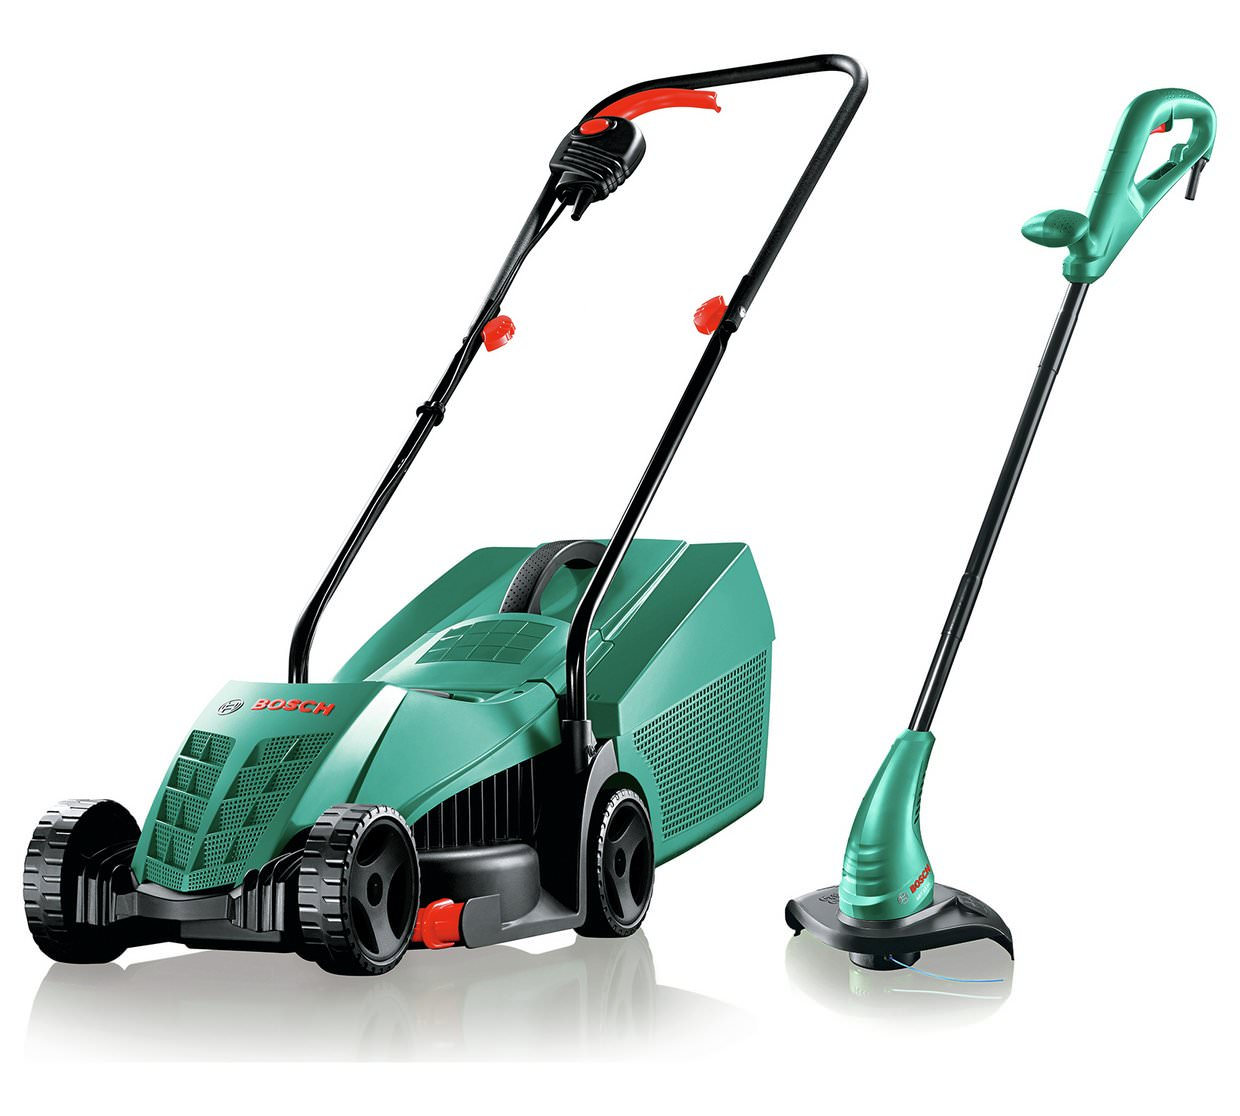 bosch rotak corded mower and trimmer twin pack at argos uk official site. Black Bedroom Furniture Sets. Home Design Ideas